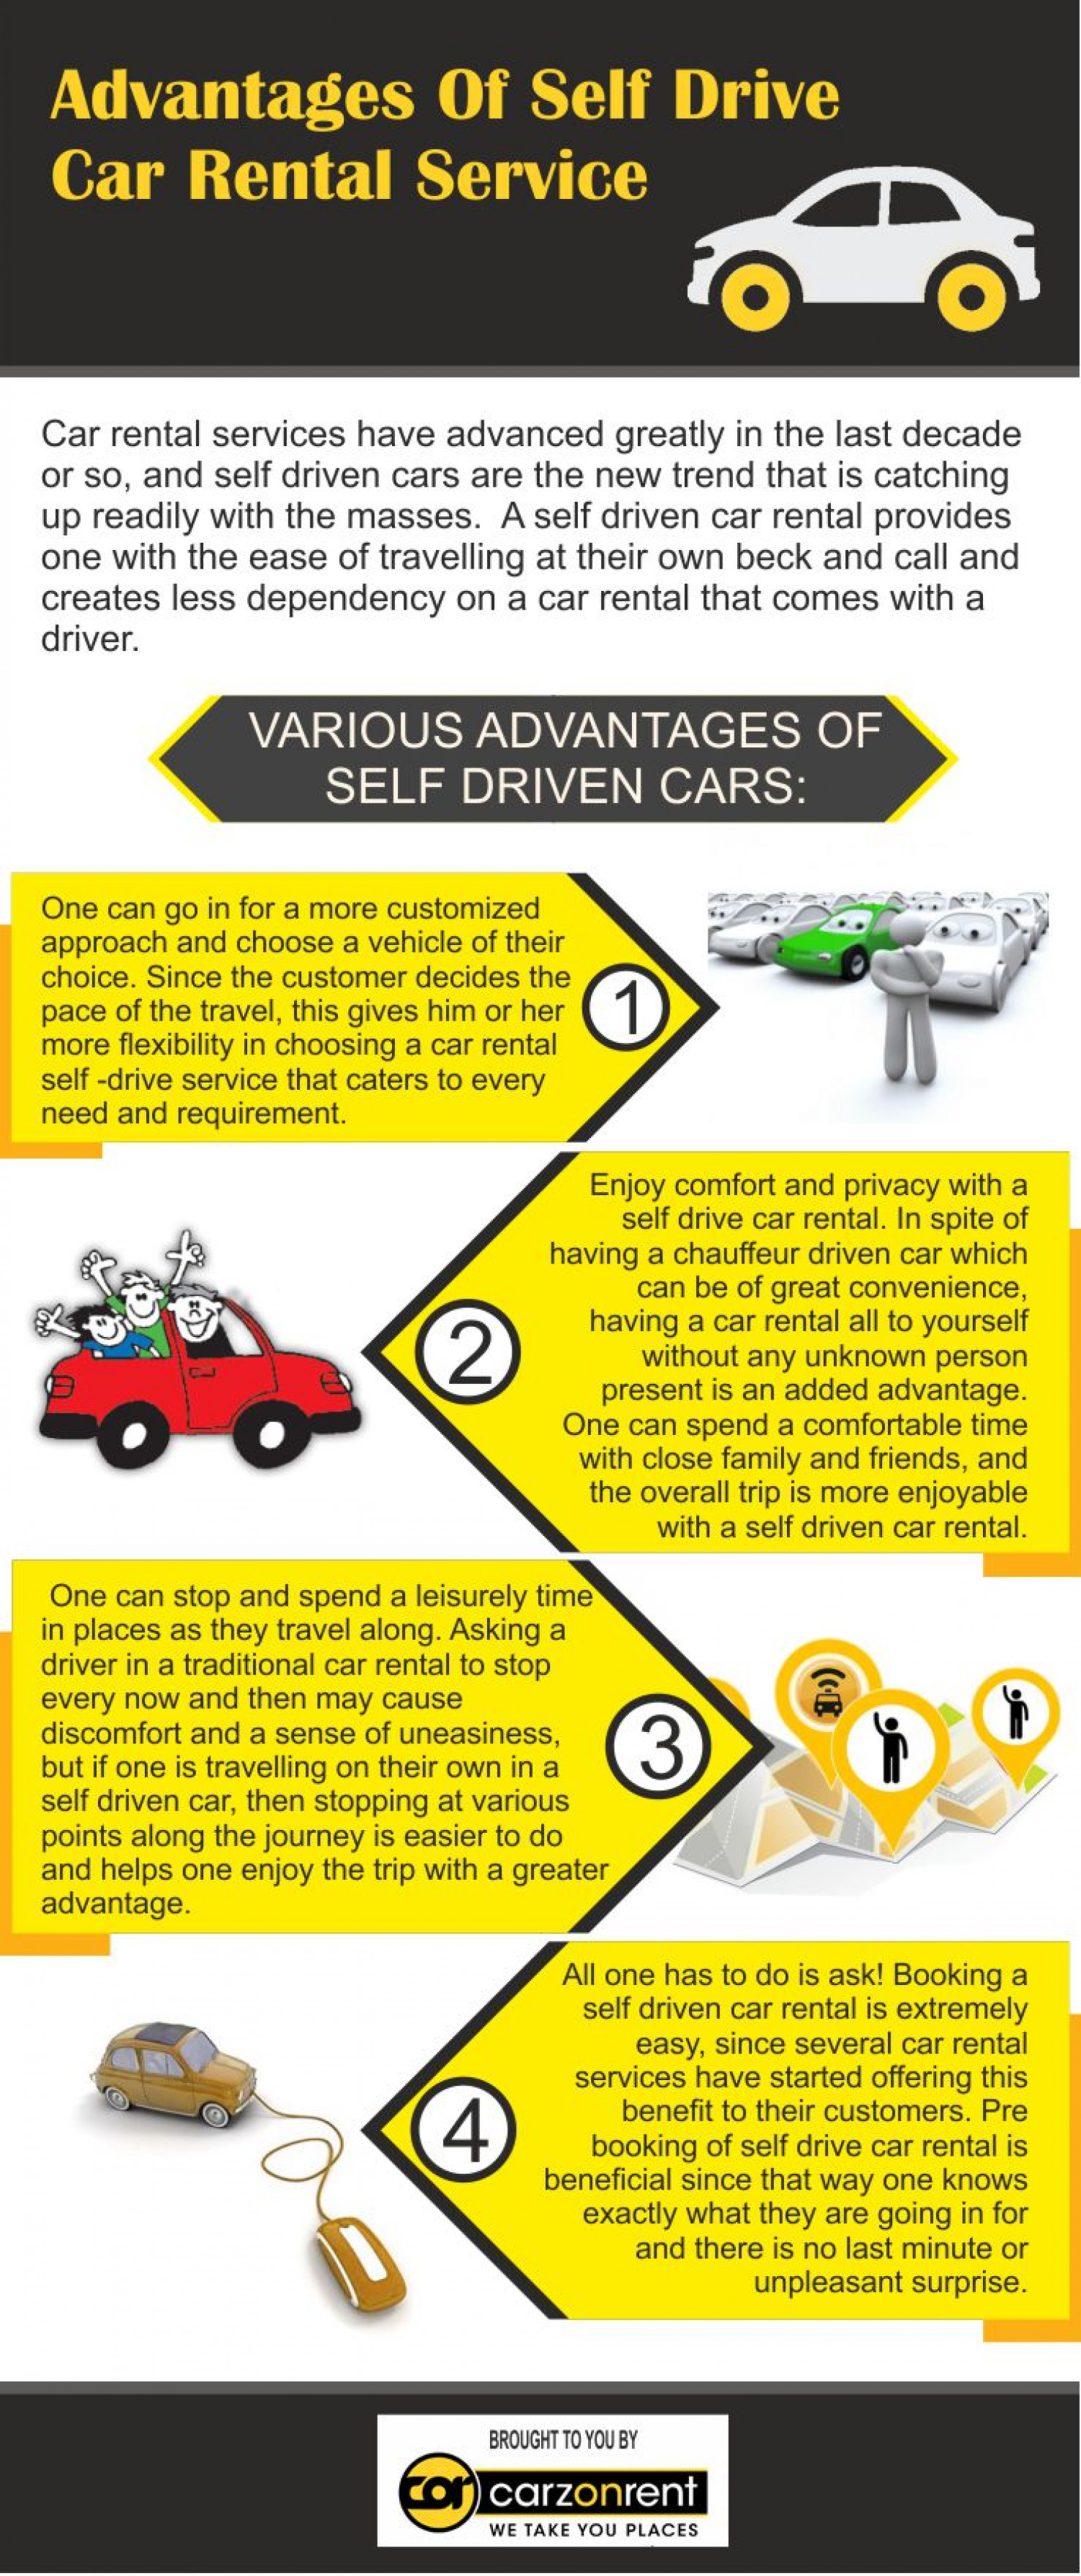 Advantages Of Self Drive Car Rental Service Infographic